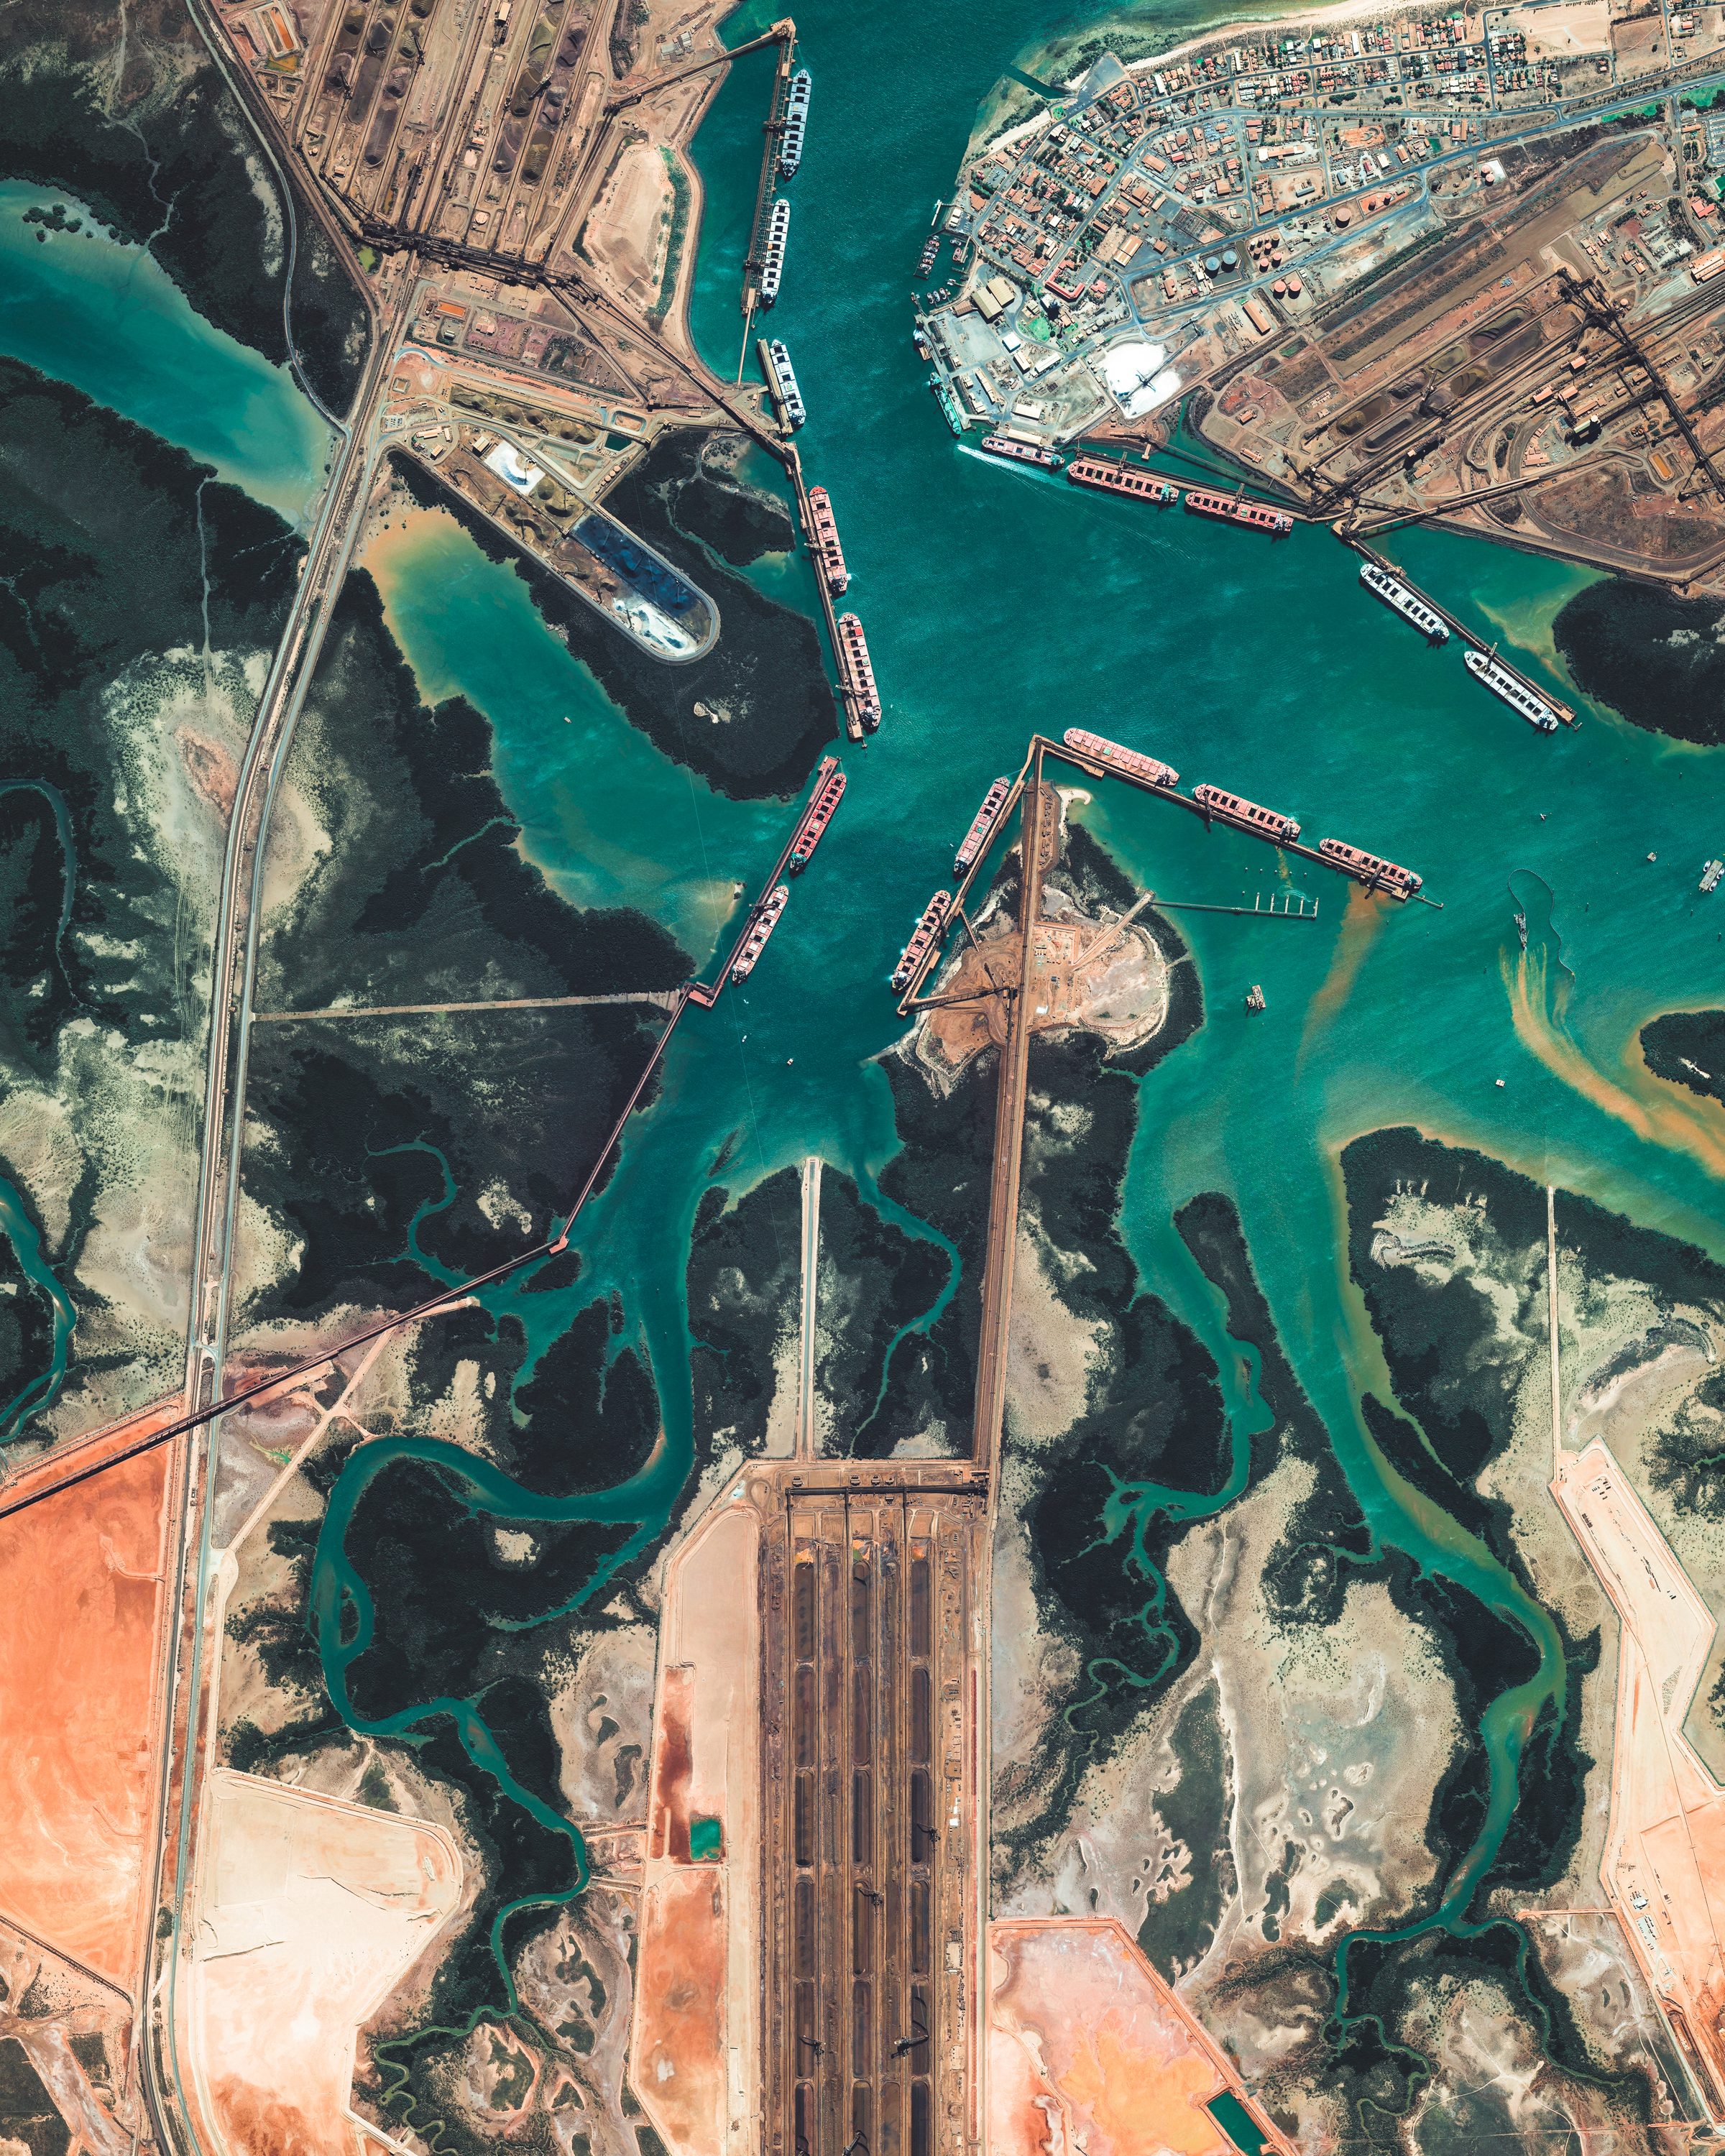 Port Hedland is the largest iron ore loading port in Australia and one of the largest in the world. Located in the Pilbara Region of Western Australia, the port recorded a throughput of more than 519 million tonnes between 2017 and 2018. On December 27, 2017, Port Hedland had its record tonnage on a single tide when eight vessels carried 1,589,061 tonnes through its waters.  -20.342525°, 118.567232°  Source imagery: Maxar Technologies